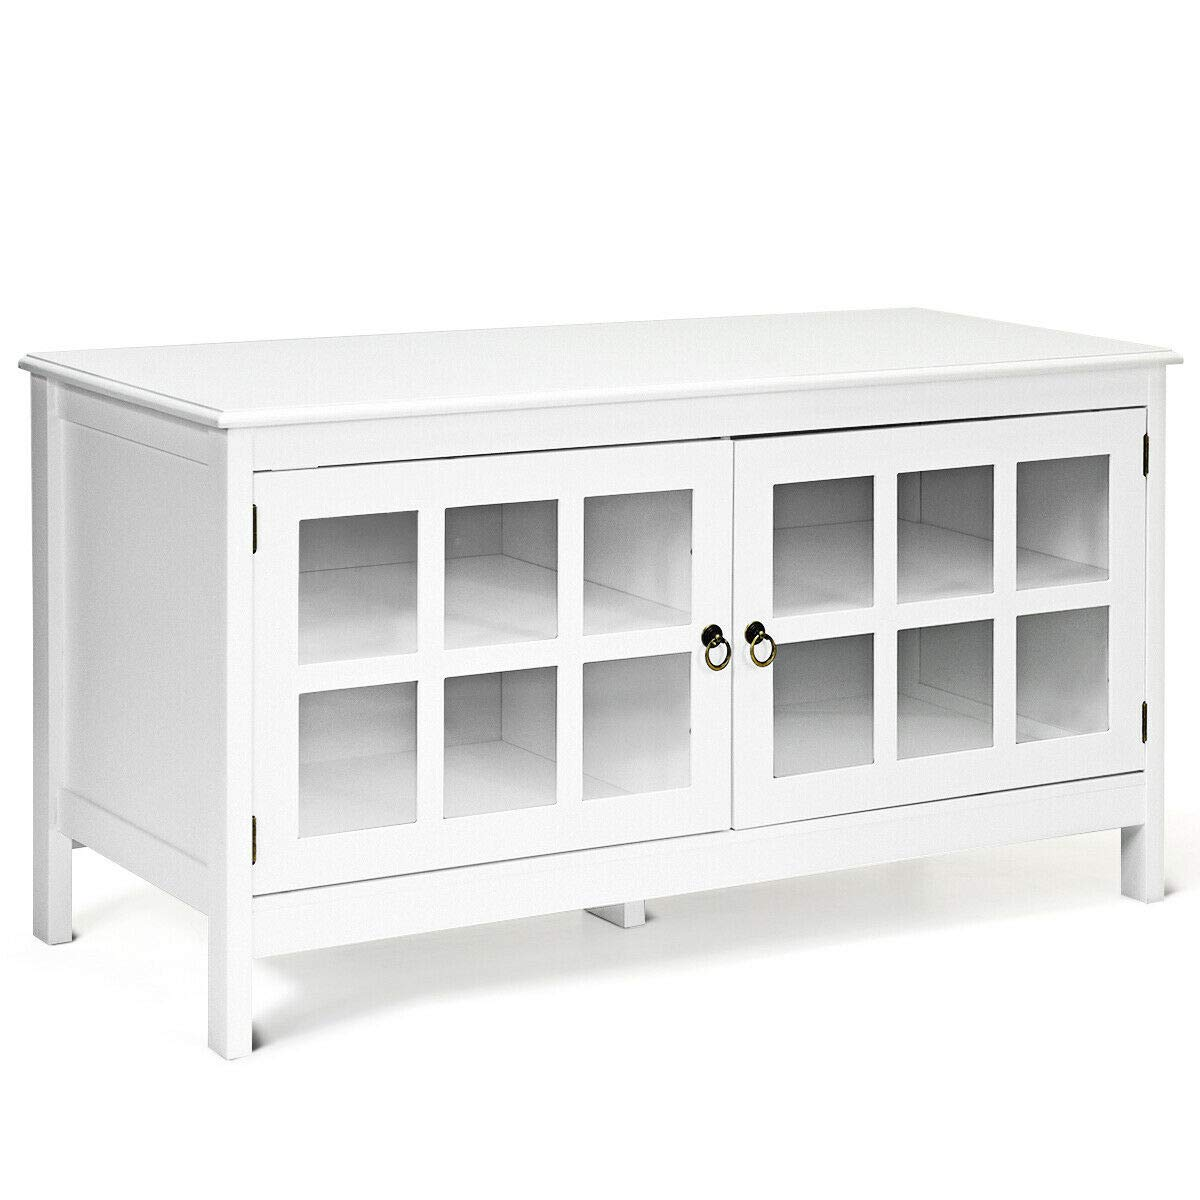 White Wood Modern TV Stand for 50 Inch TV with Storage and Glass Doors for Living Room, Bedroom, Entertainment Center, Media Console Table, Home Furniture by Home & Patio Furniture